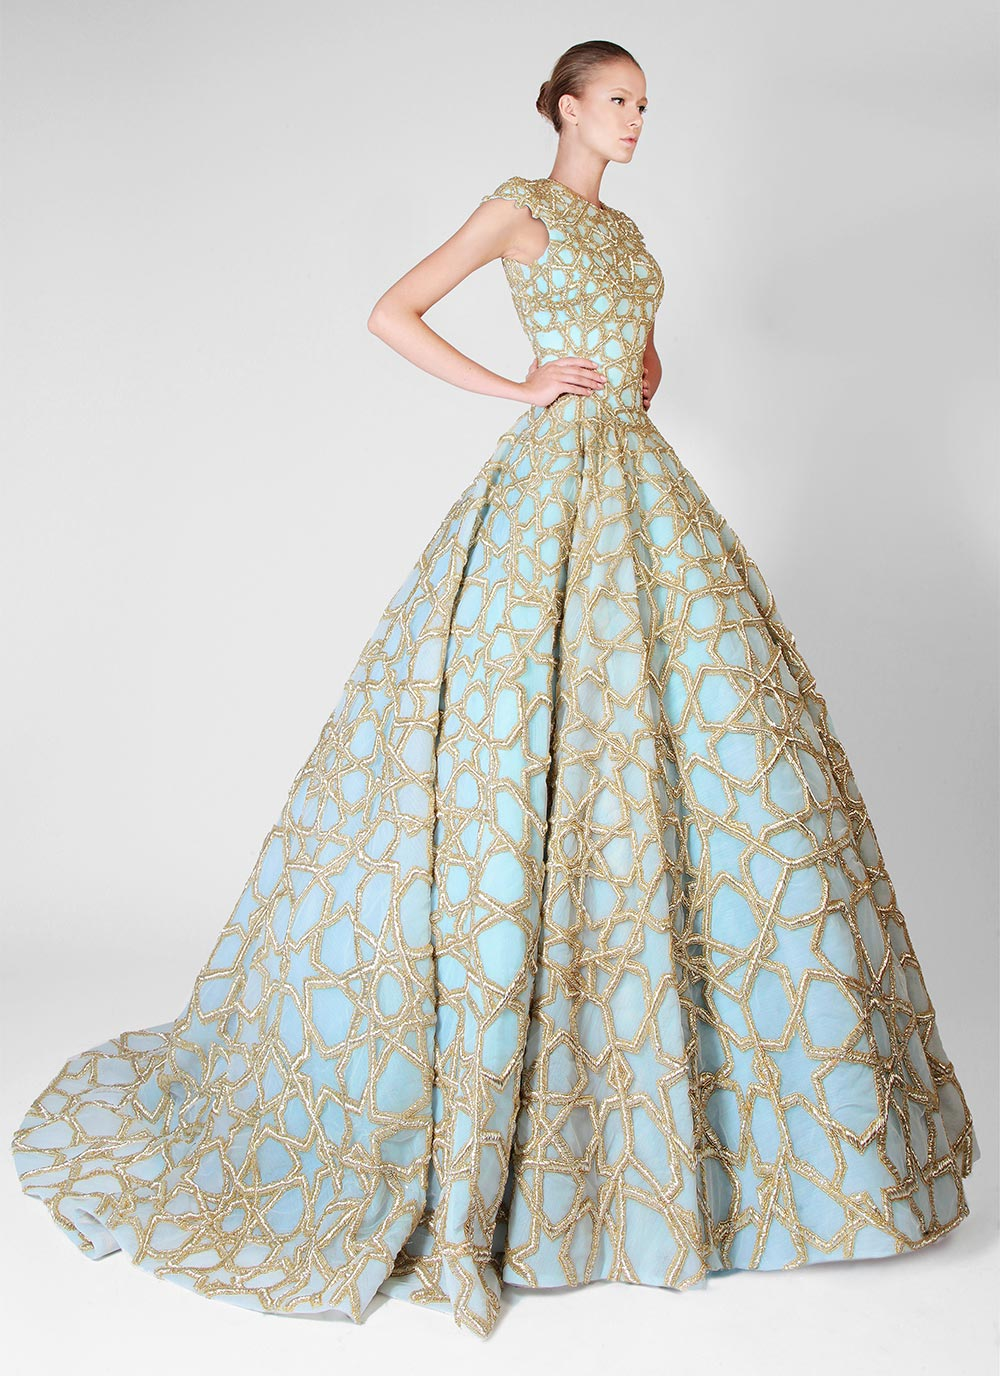 patterned wedding dresses photo - 1